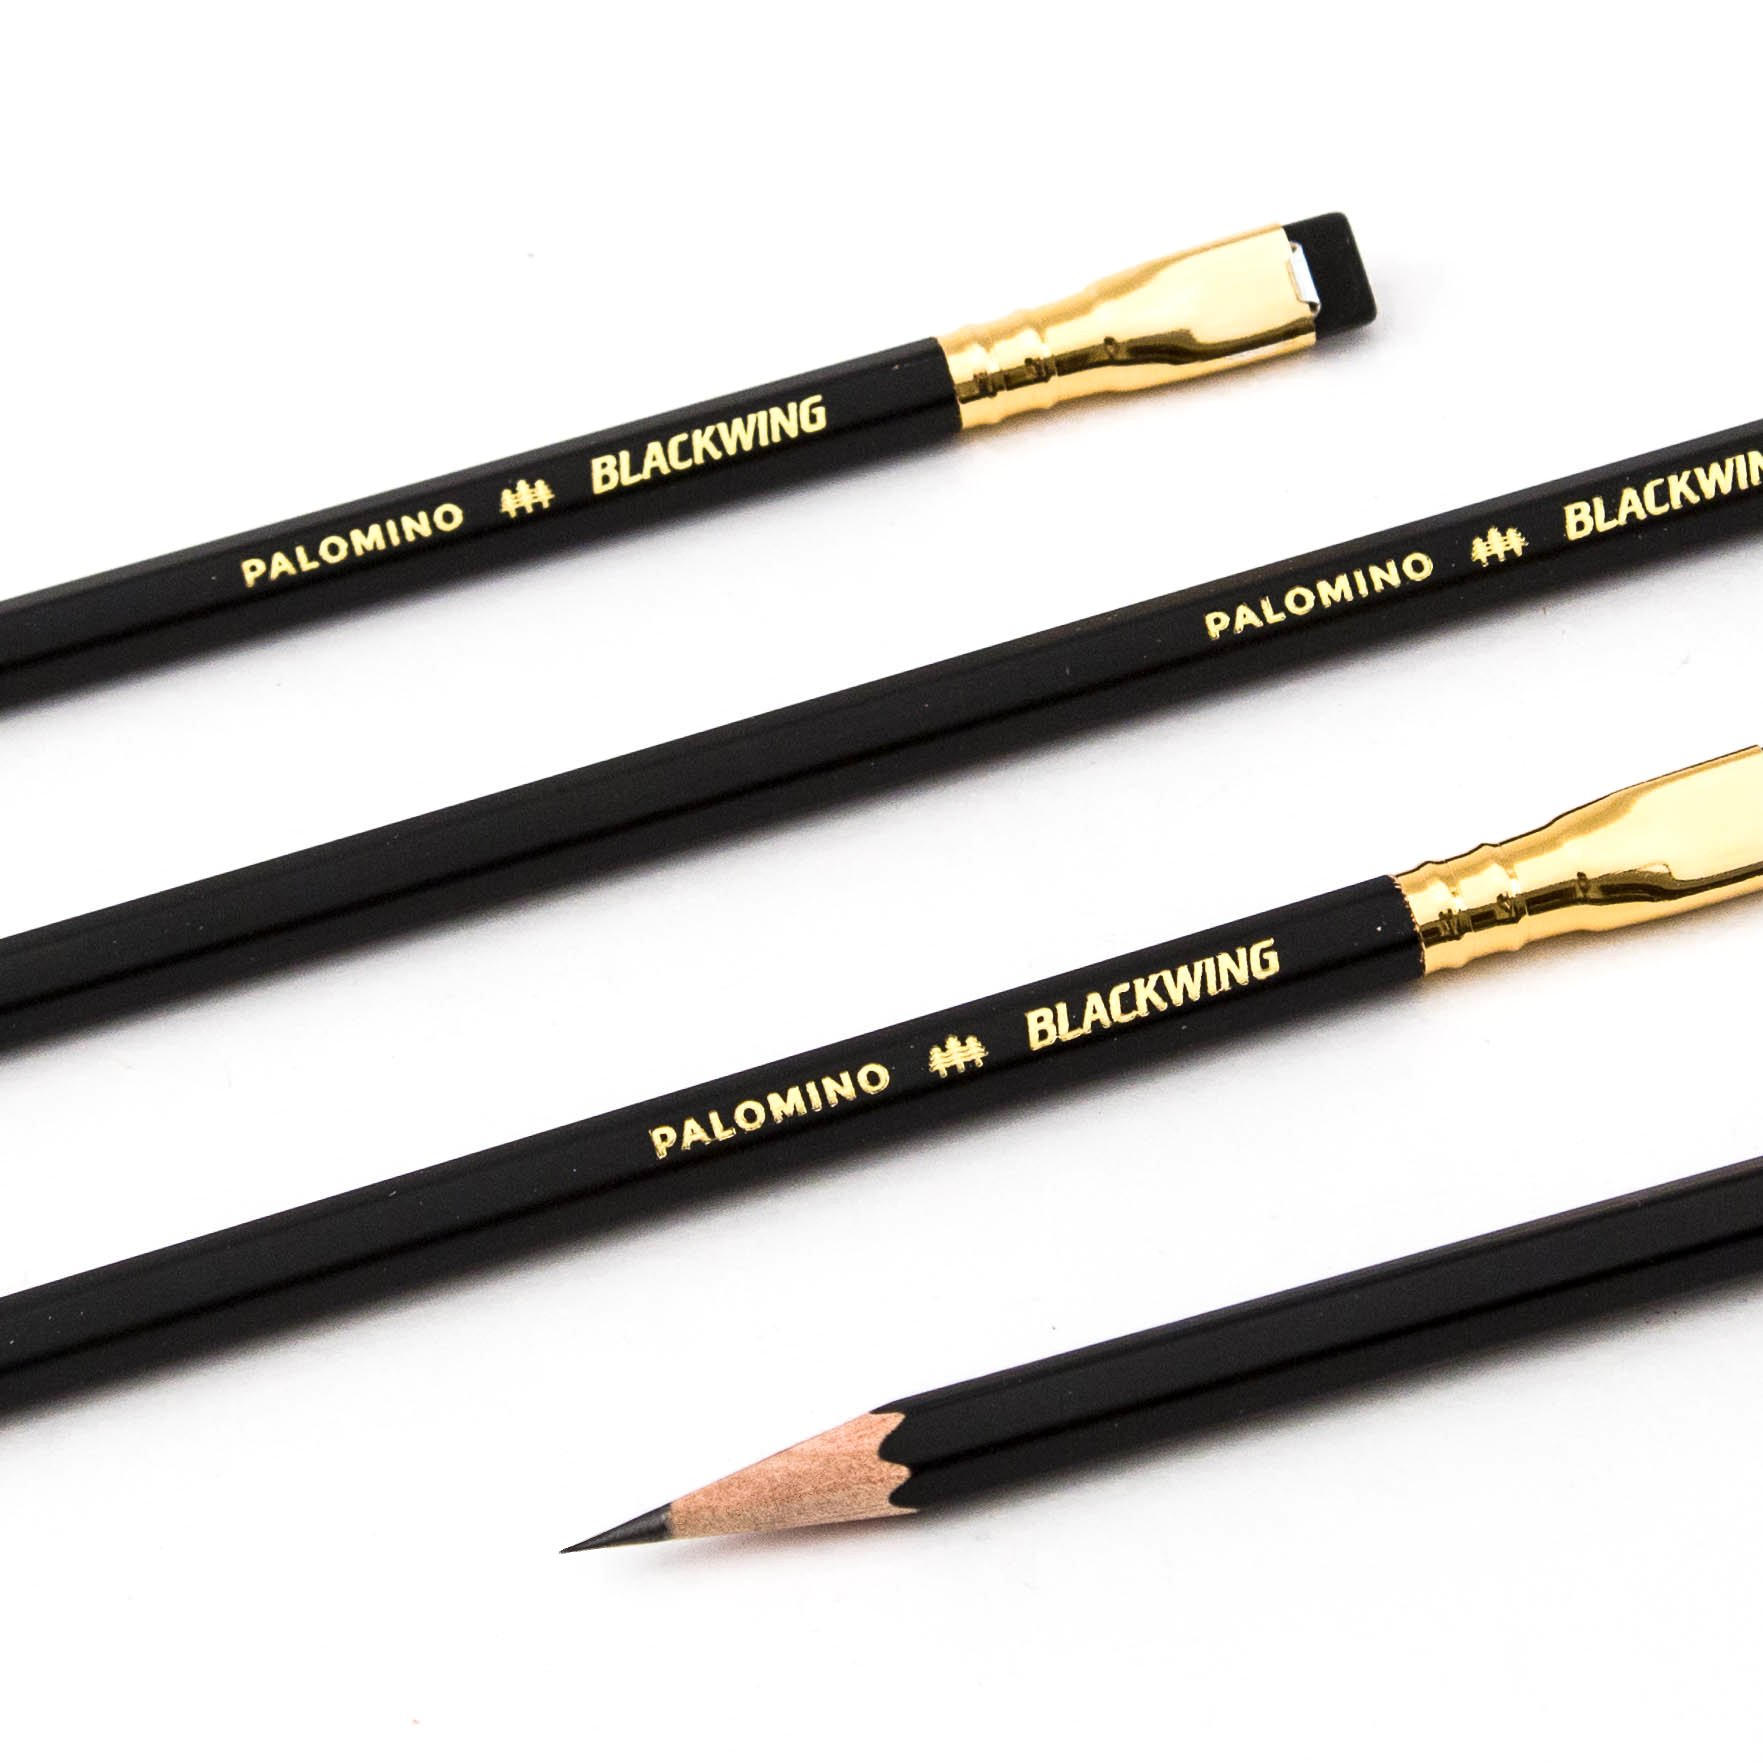 Palomino Blackwing Pencils - 12 Count by Blackwing